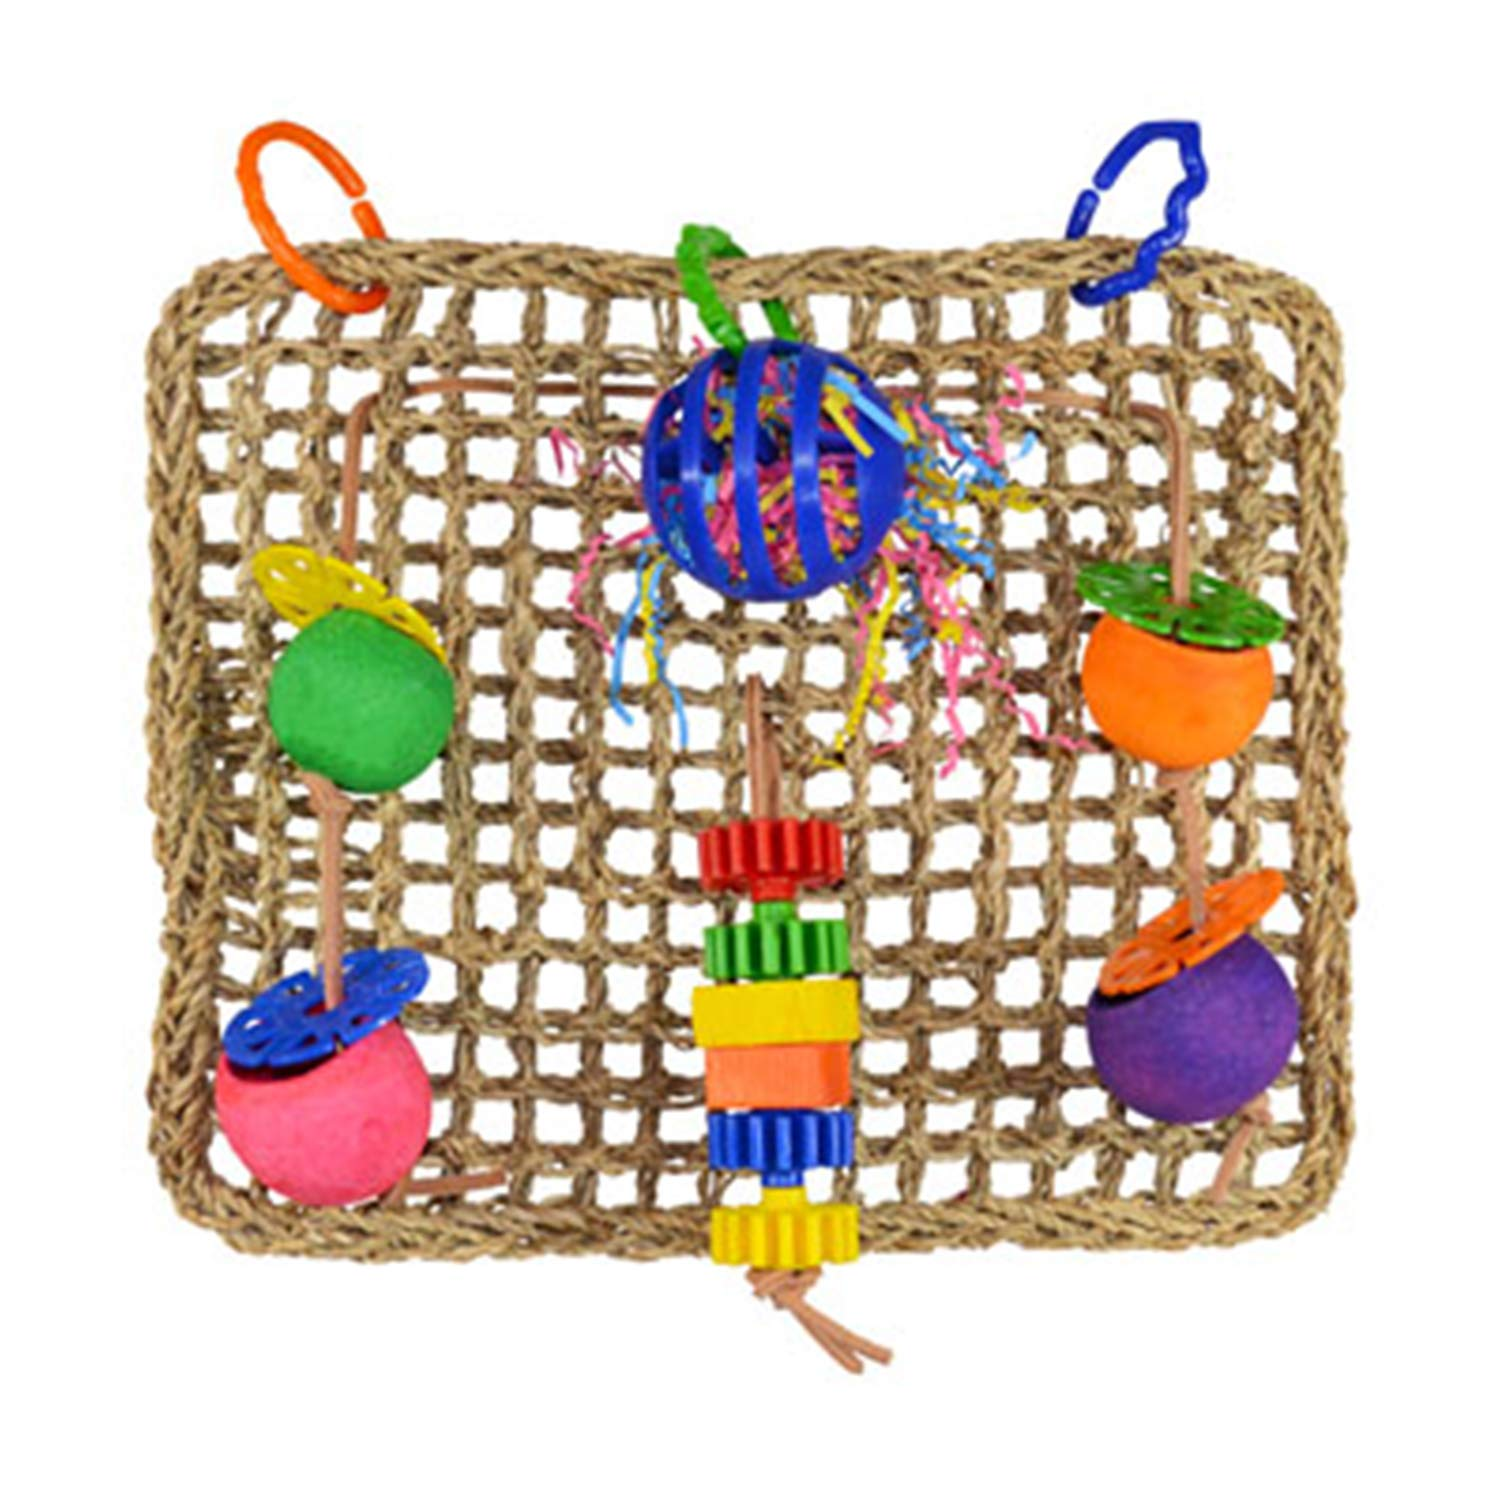 Super Bird SB746 Seagrass Foraging Wall Bird Toy with Colorful Fun Gears, Large Size, 4'' x 14'' x 14'' by SUPERBIRD